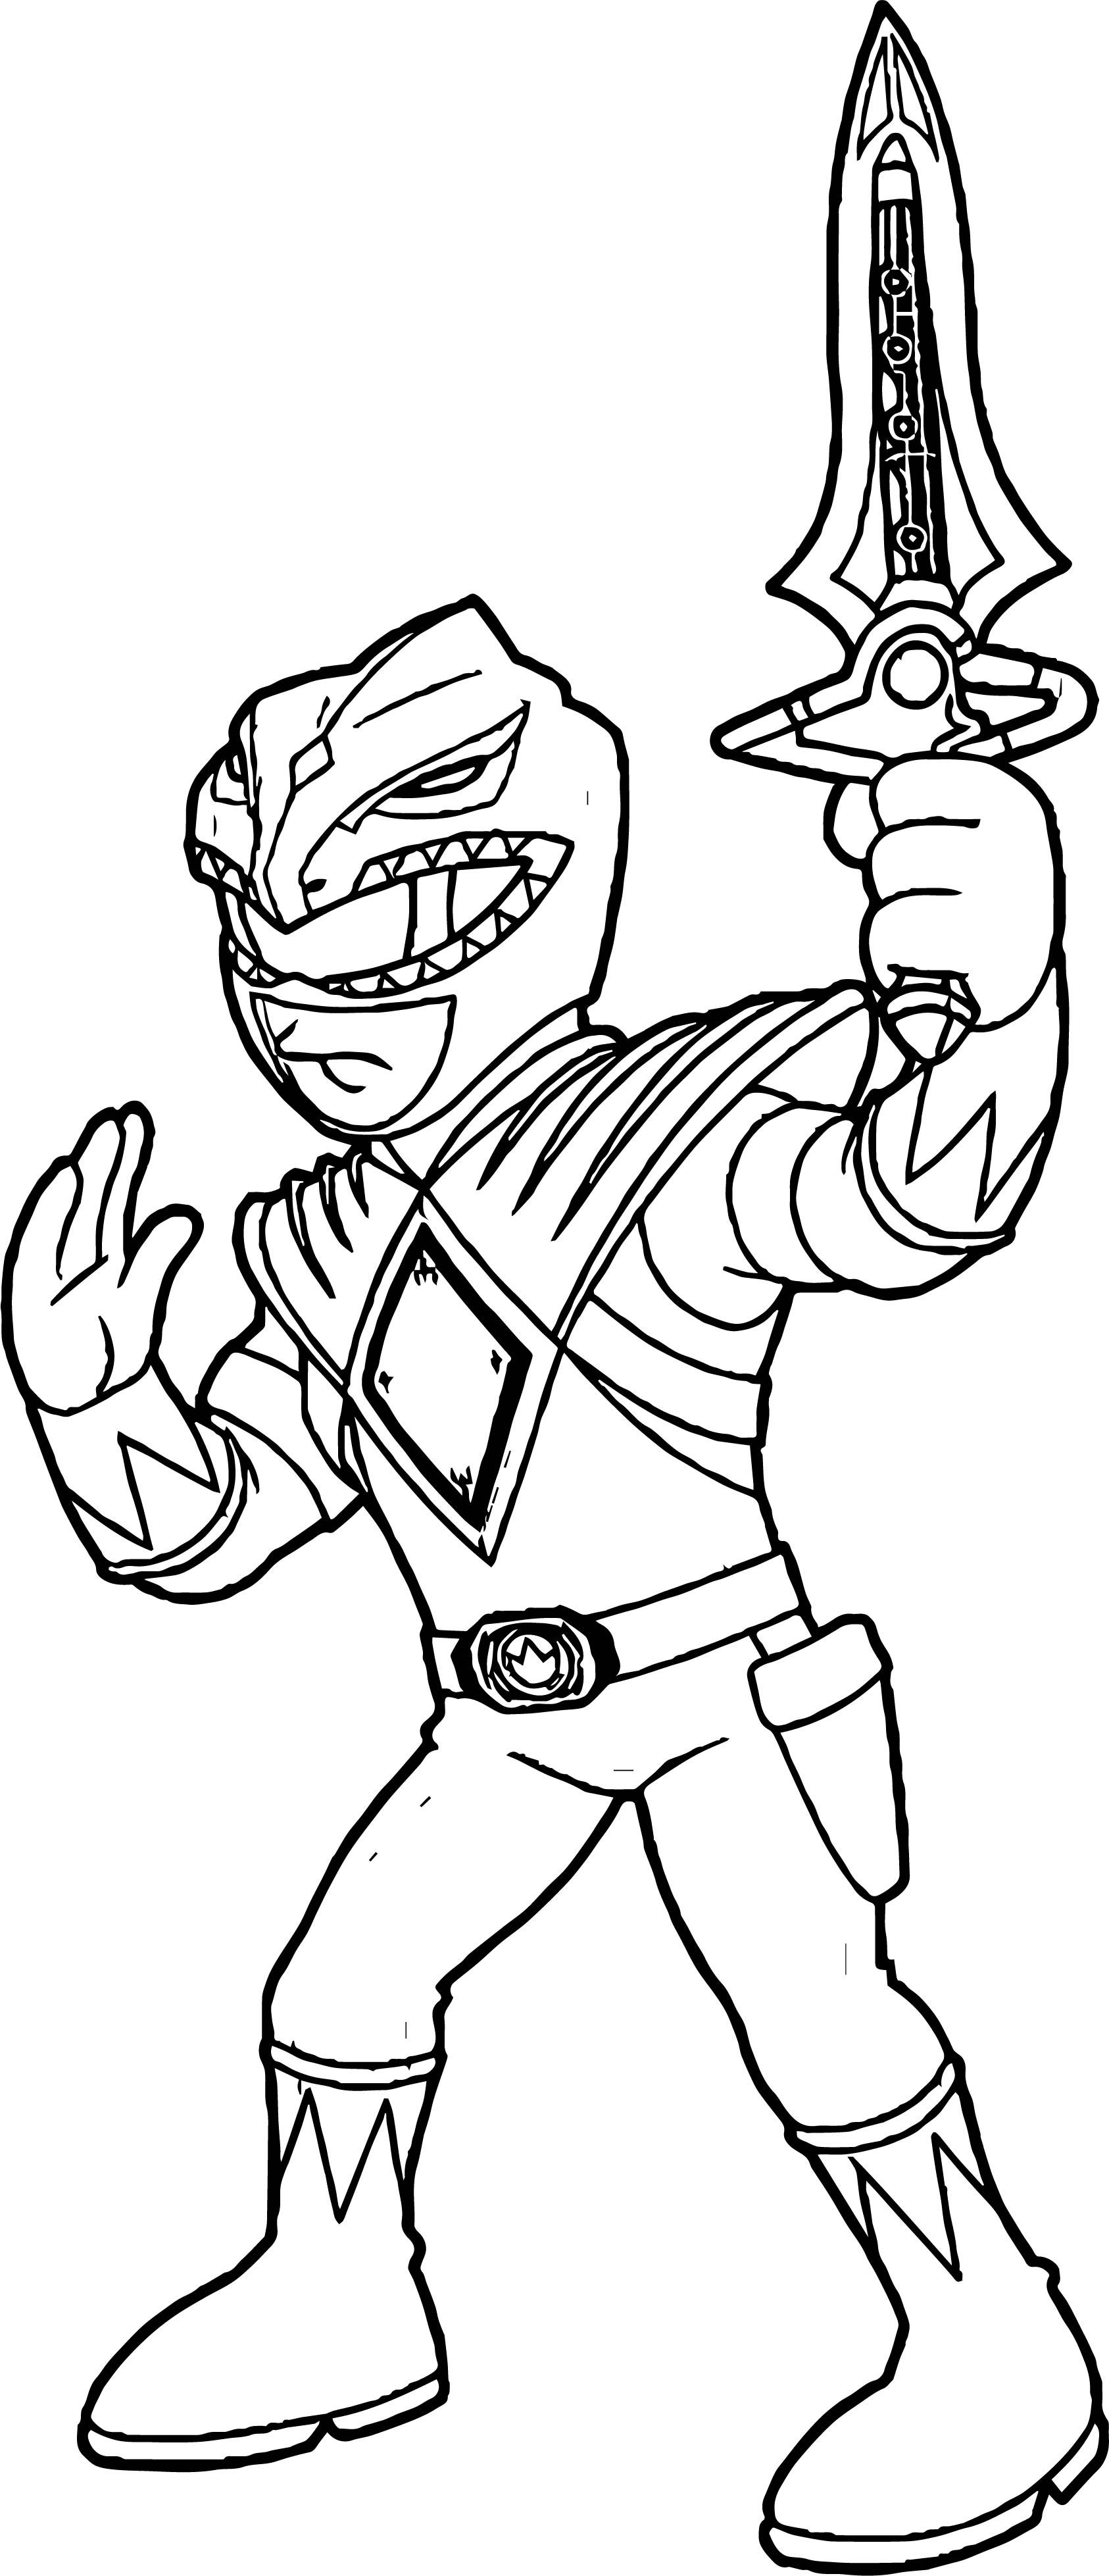 Awesome Power Rangers Green Ranger Coloring Page